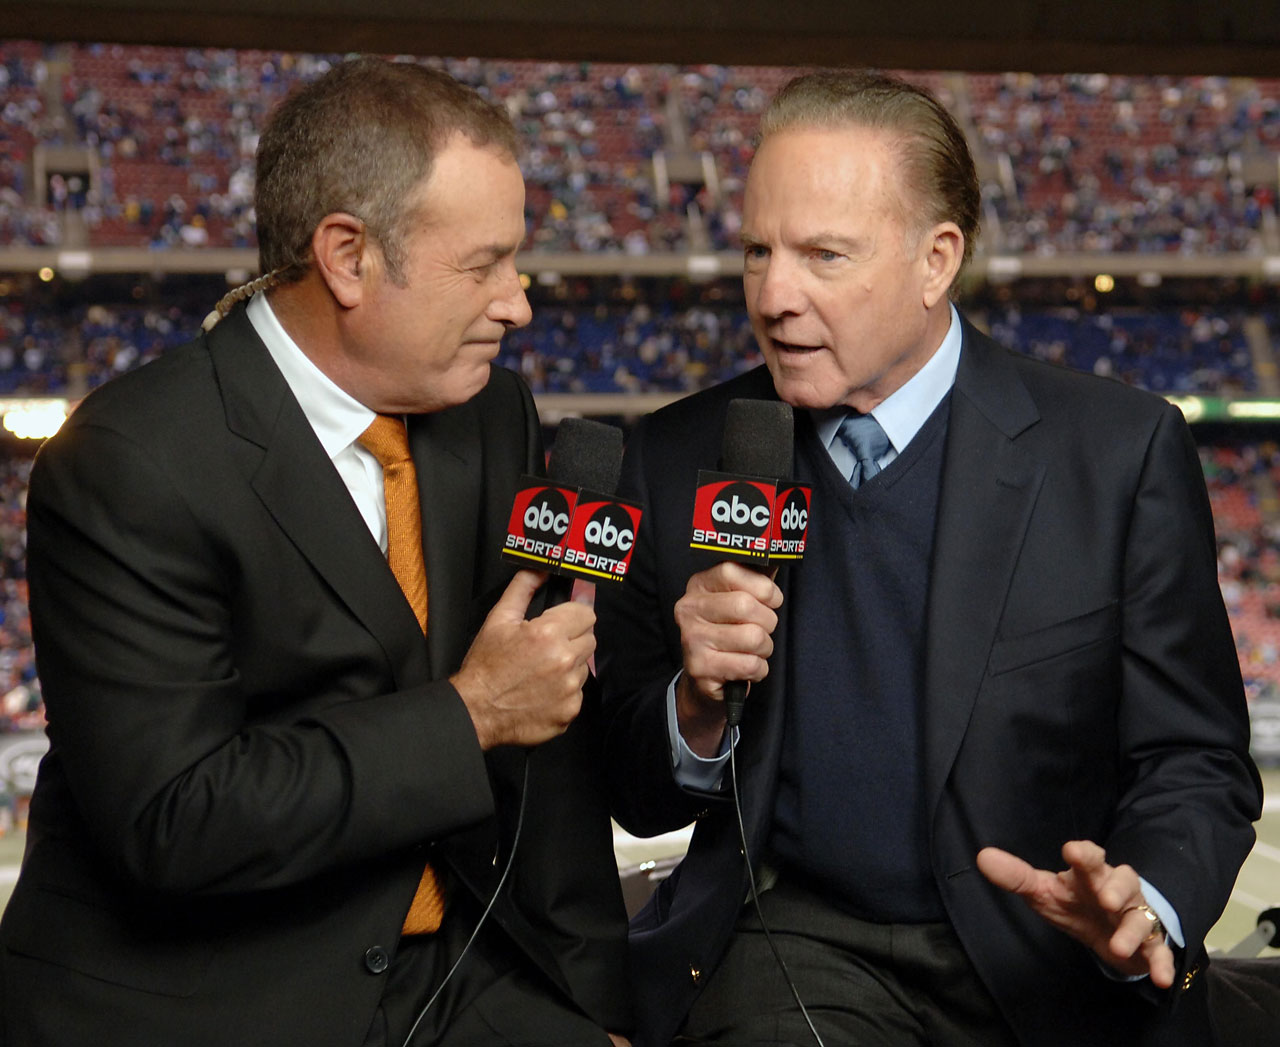 Al Michaels, left, and his former 'Monday Night Football' announcing partner Frank Gifford talk over their experiences at halftime of the last ABC Monday Night Football game telecast, between the New England Patriots and the New York Jets, at Giants Stadium on Dec. 26, 2005.